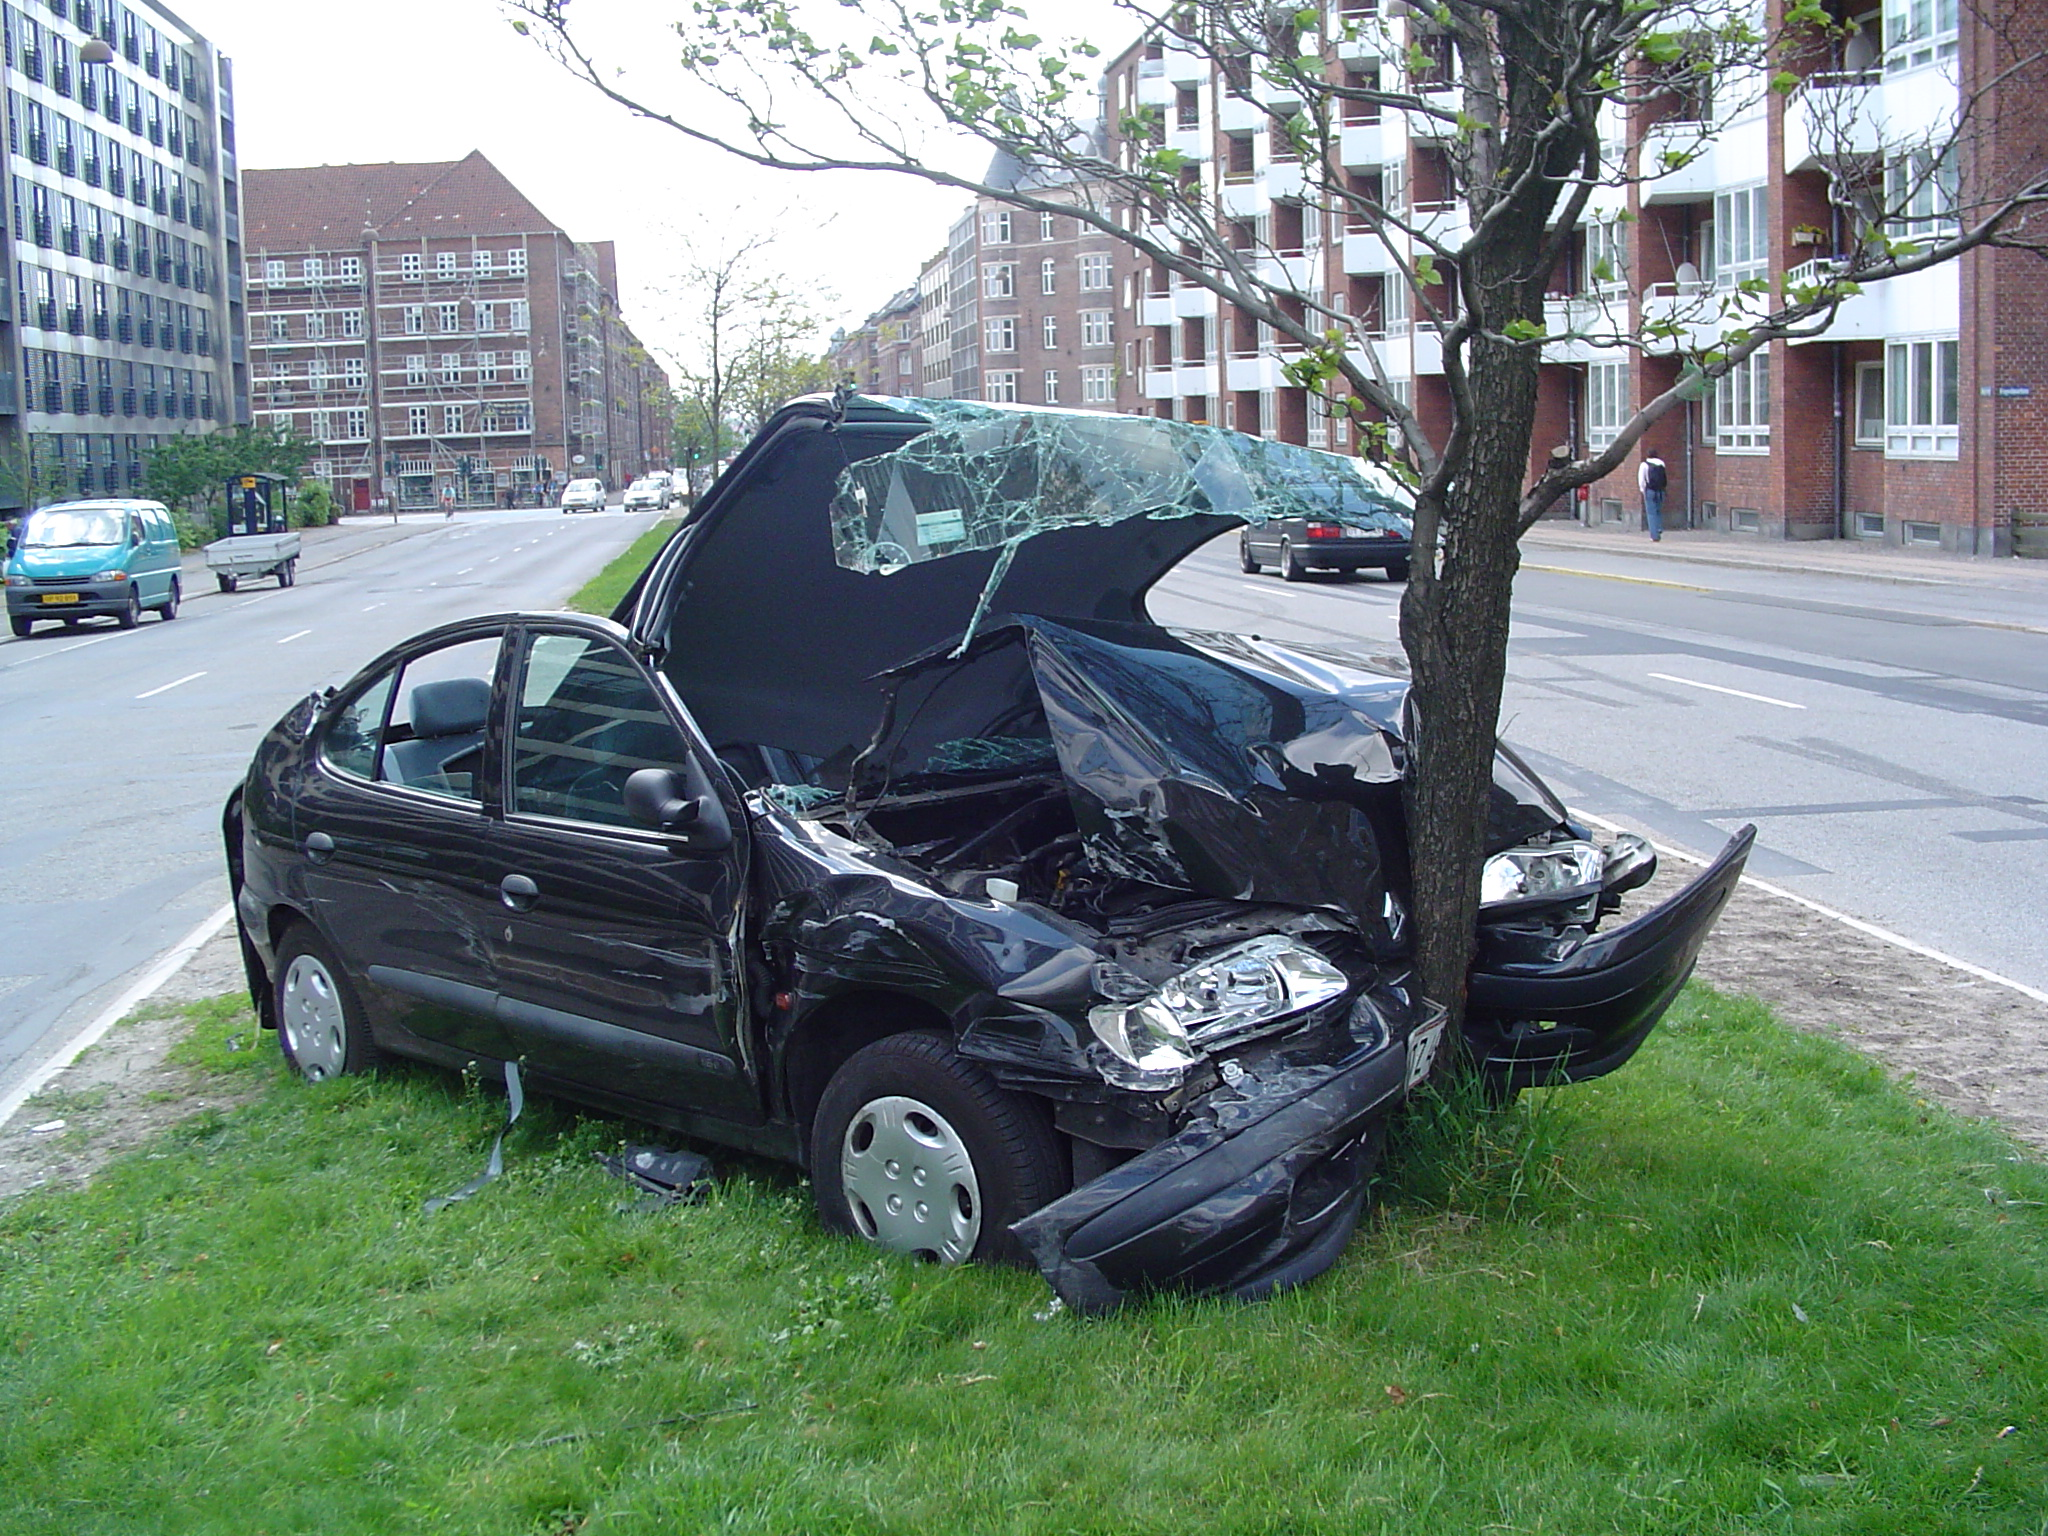 Image result for white car crash into tree